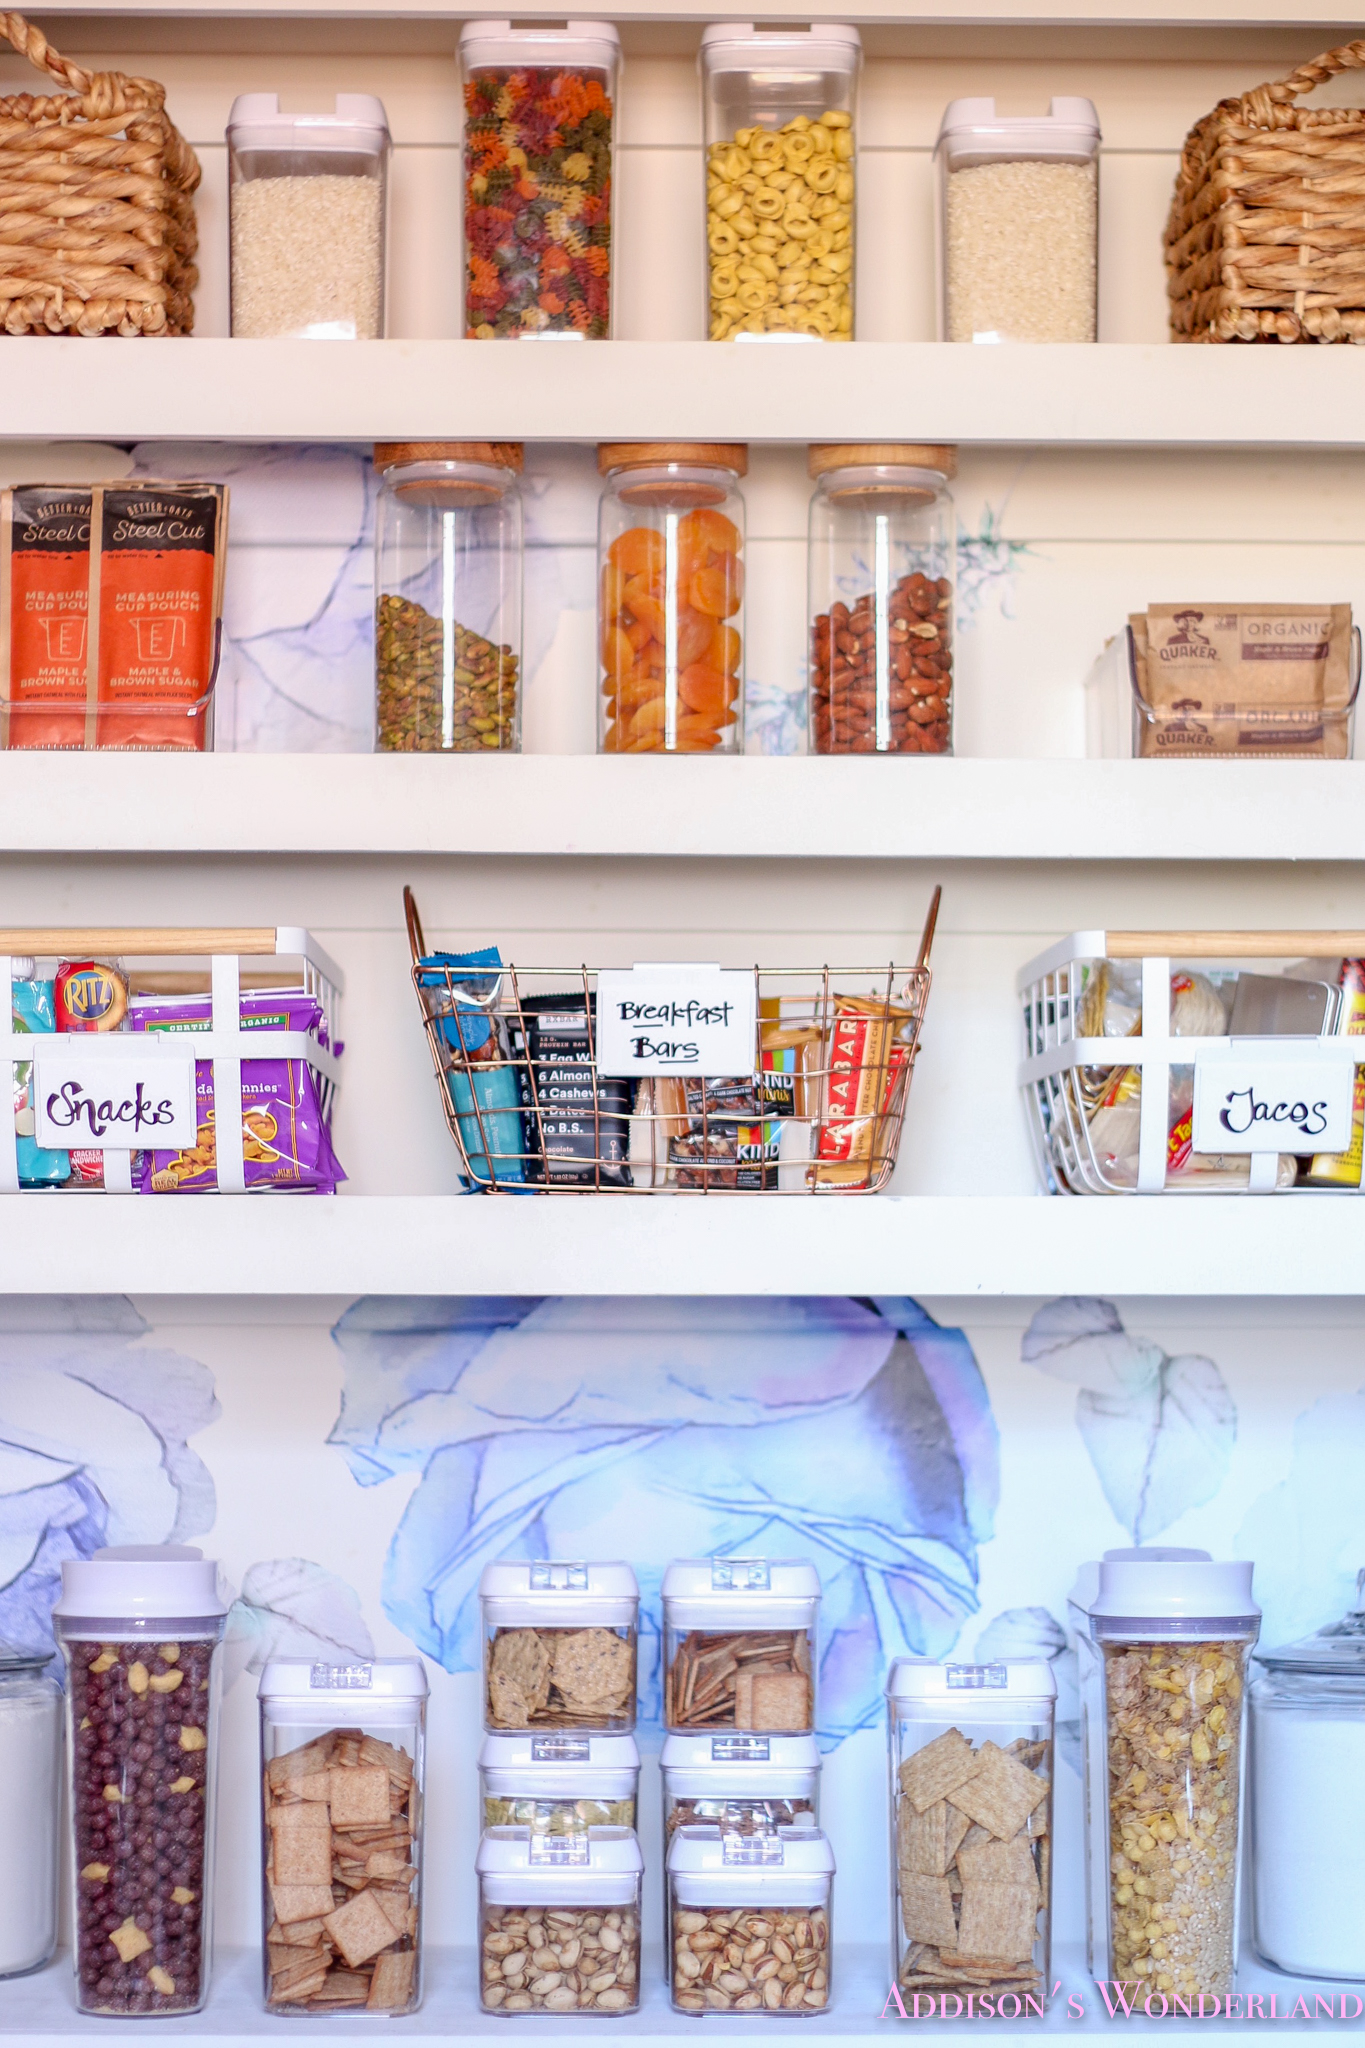 Pantry Organization Ideas from Our Colorful New Pantry!